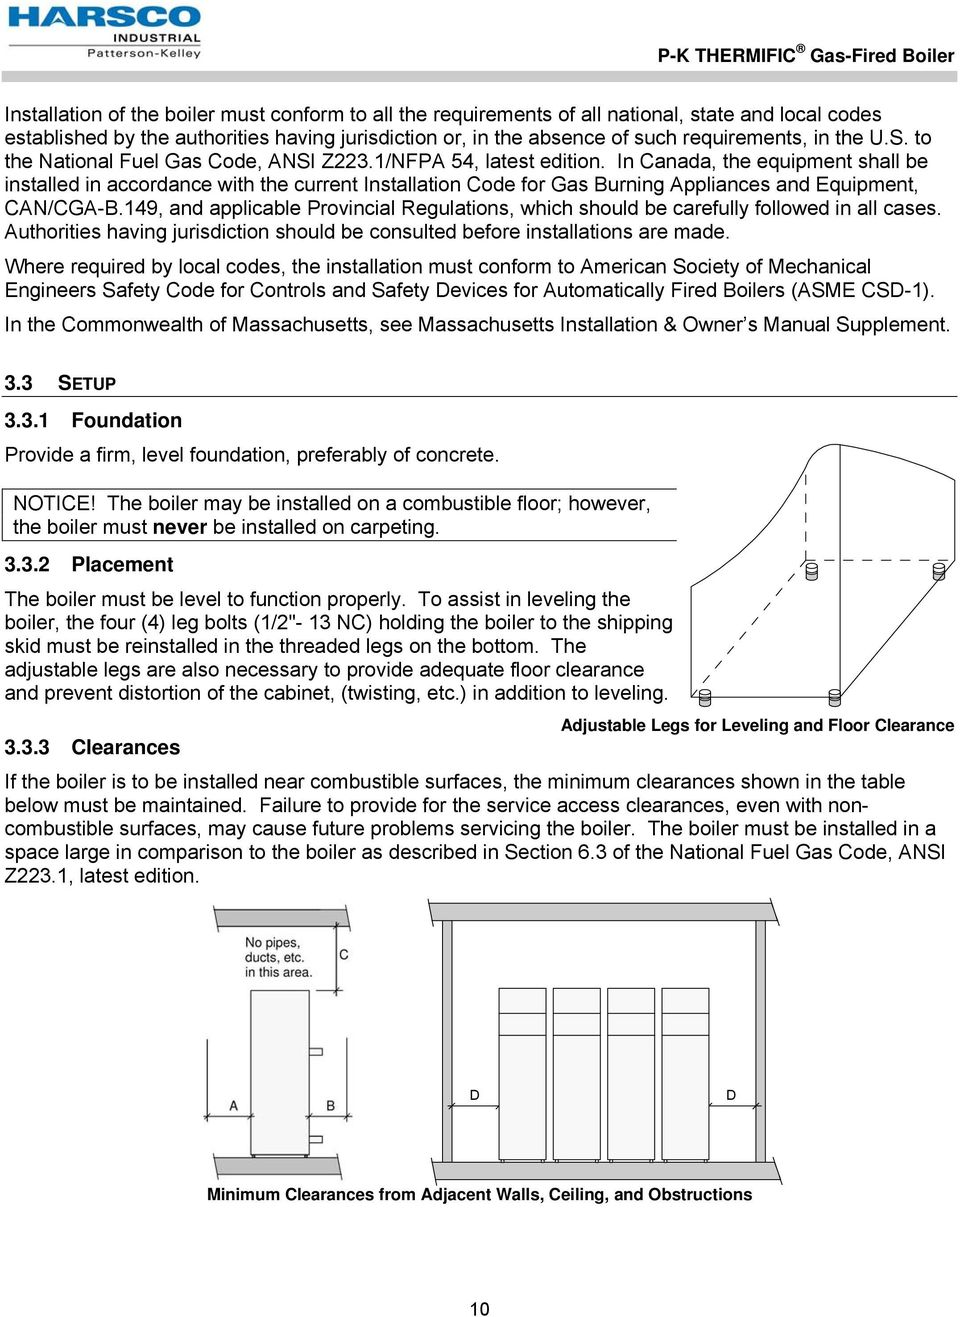 P K Thermific Gas Fired Boiler Pdf Industrial Wiring Diagram In Canada The Equipment Shall Be Installed Accordance With Current Installation Code For